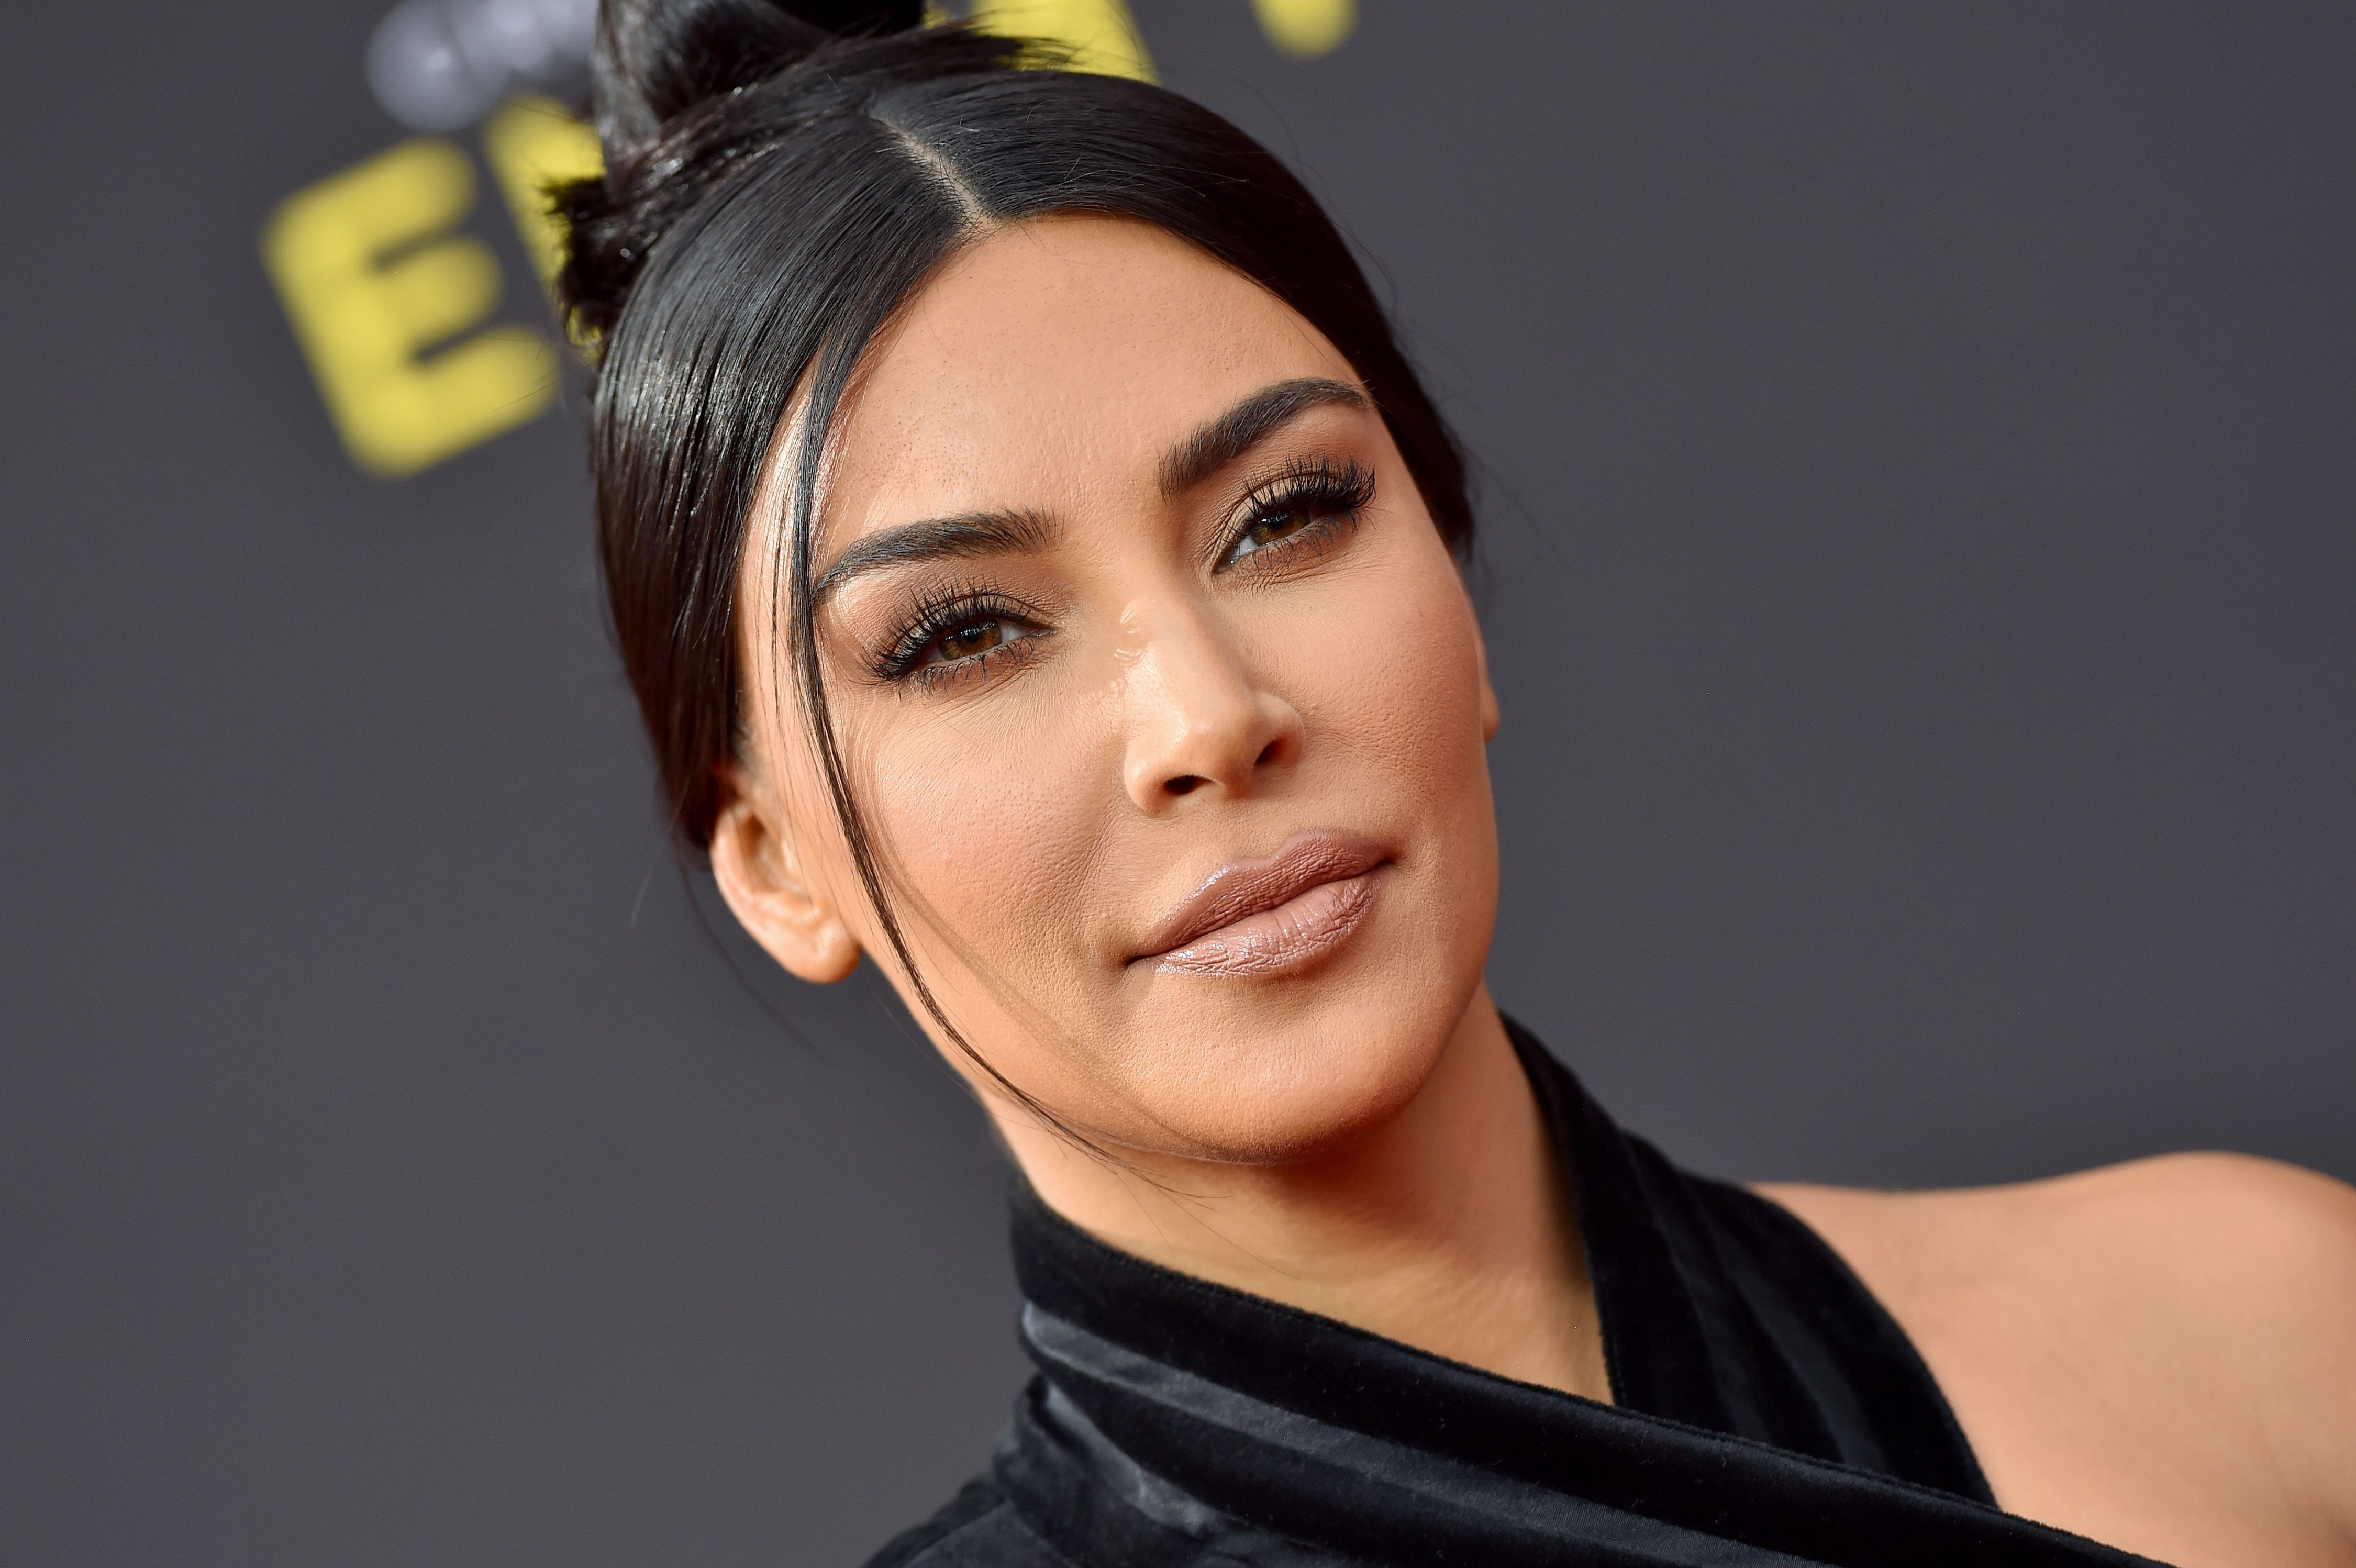 Kim Kardashian's Mystery Illness Turned Out to Be Psoriatic Arthritis—But What Is That?